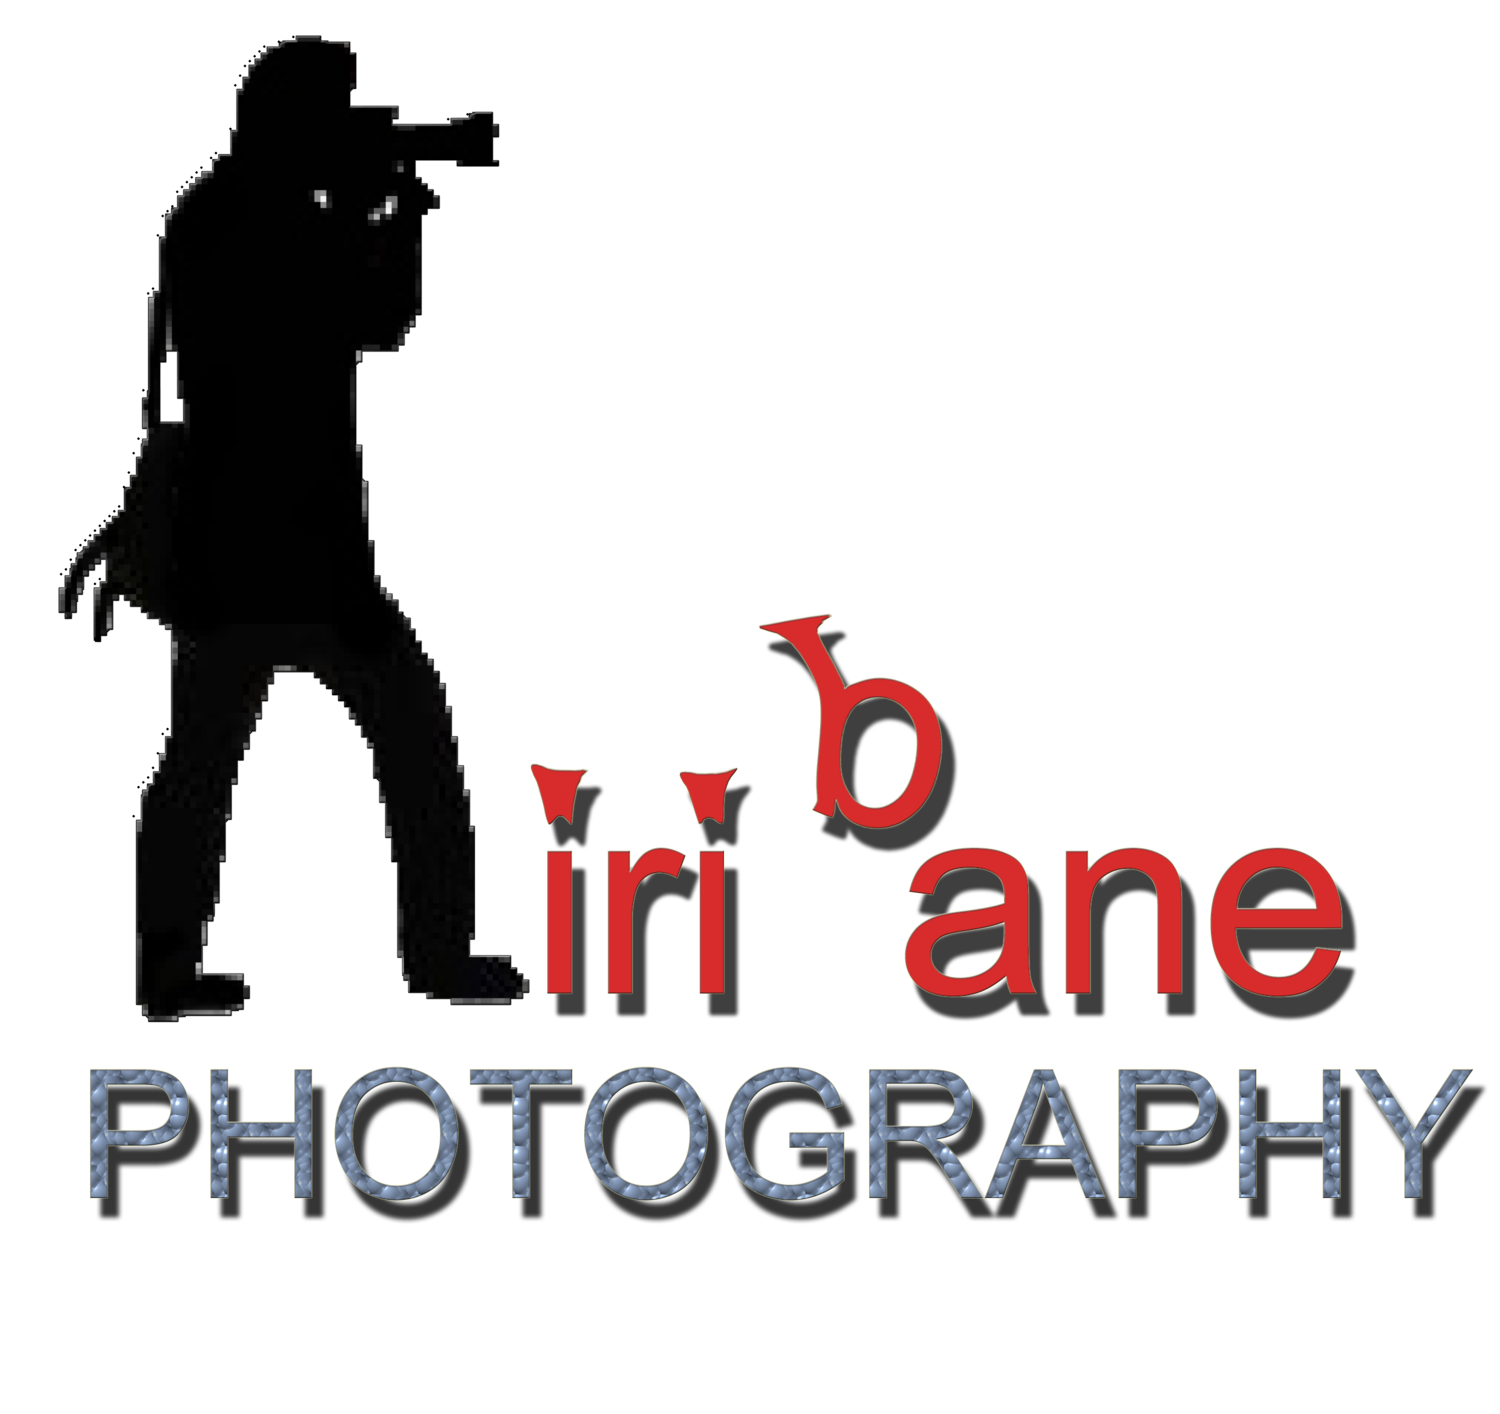 Kiribane Photography